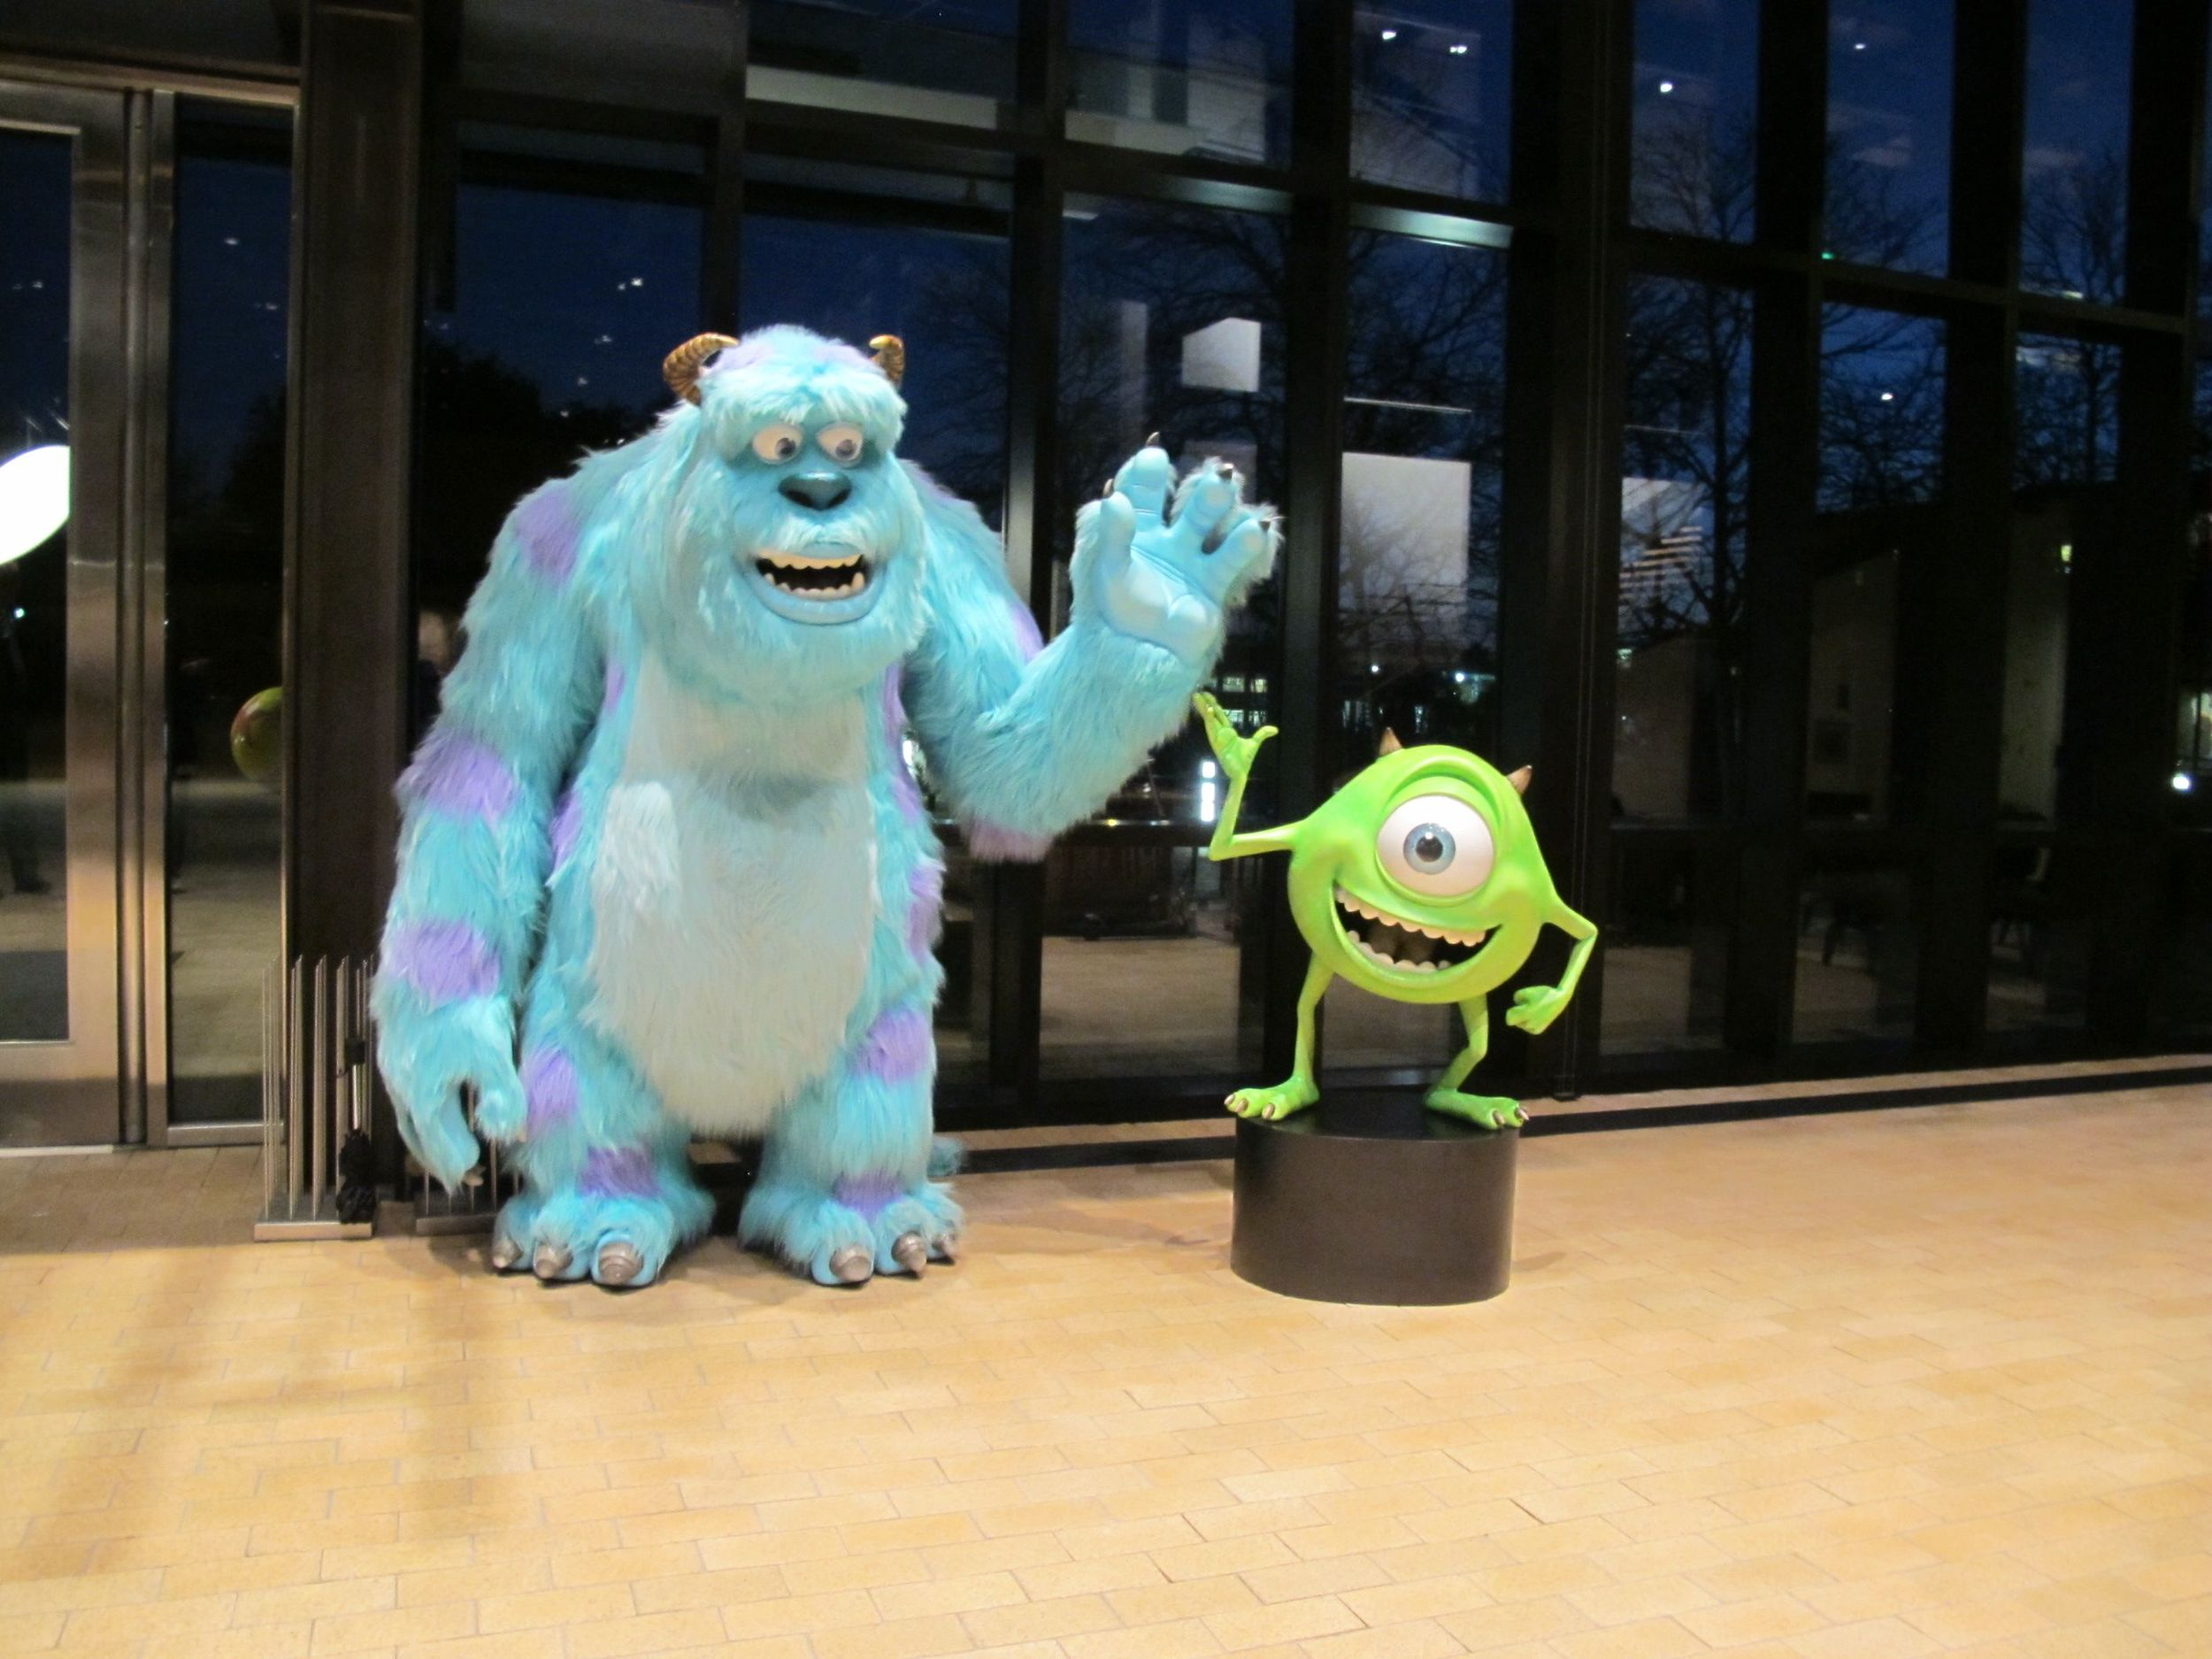 As darkness fell, we bid farewell to the Monsters, Inc., characters Sulley (left) and Mike.